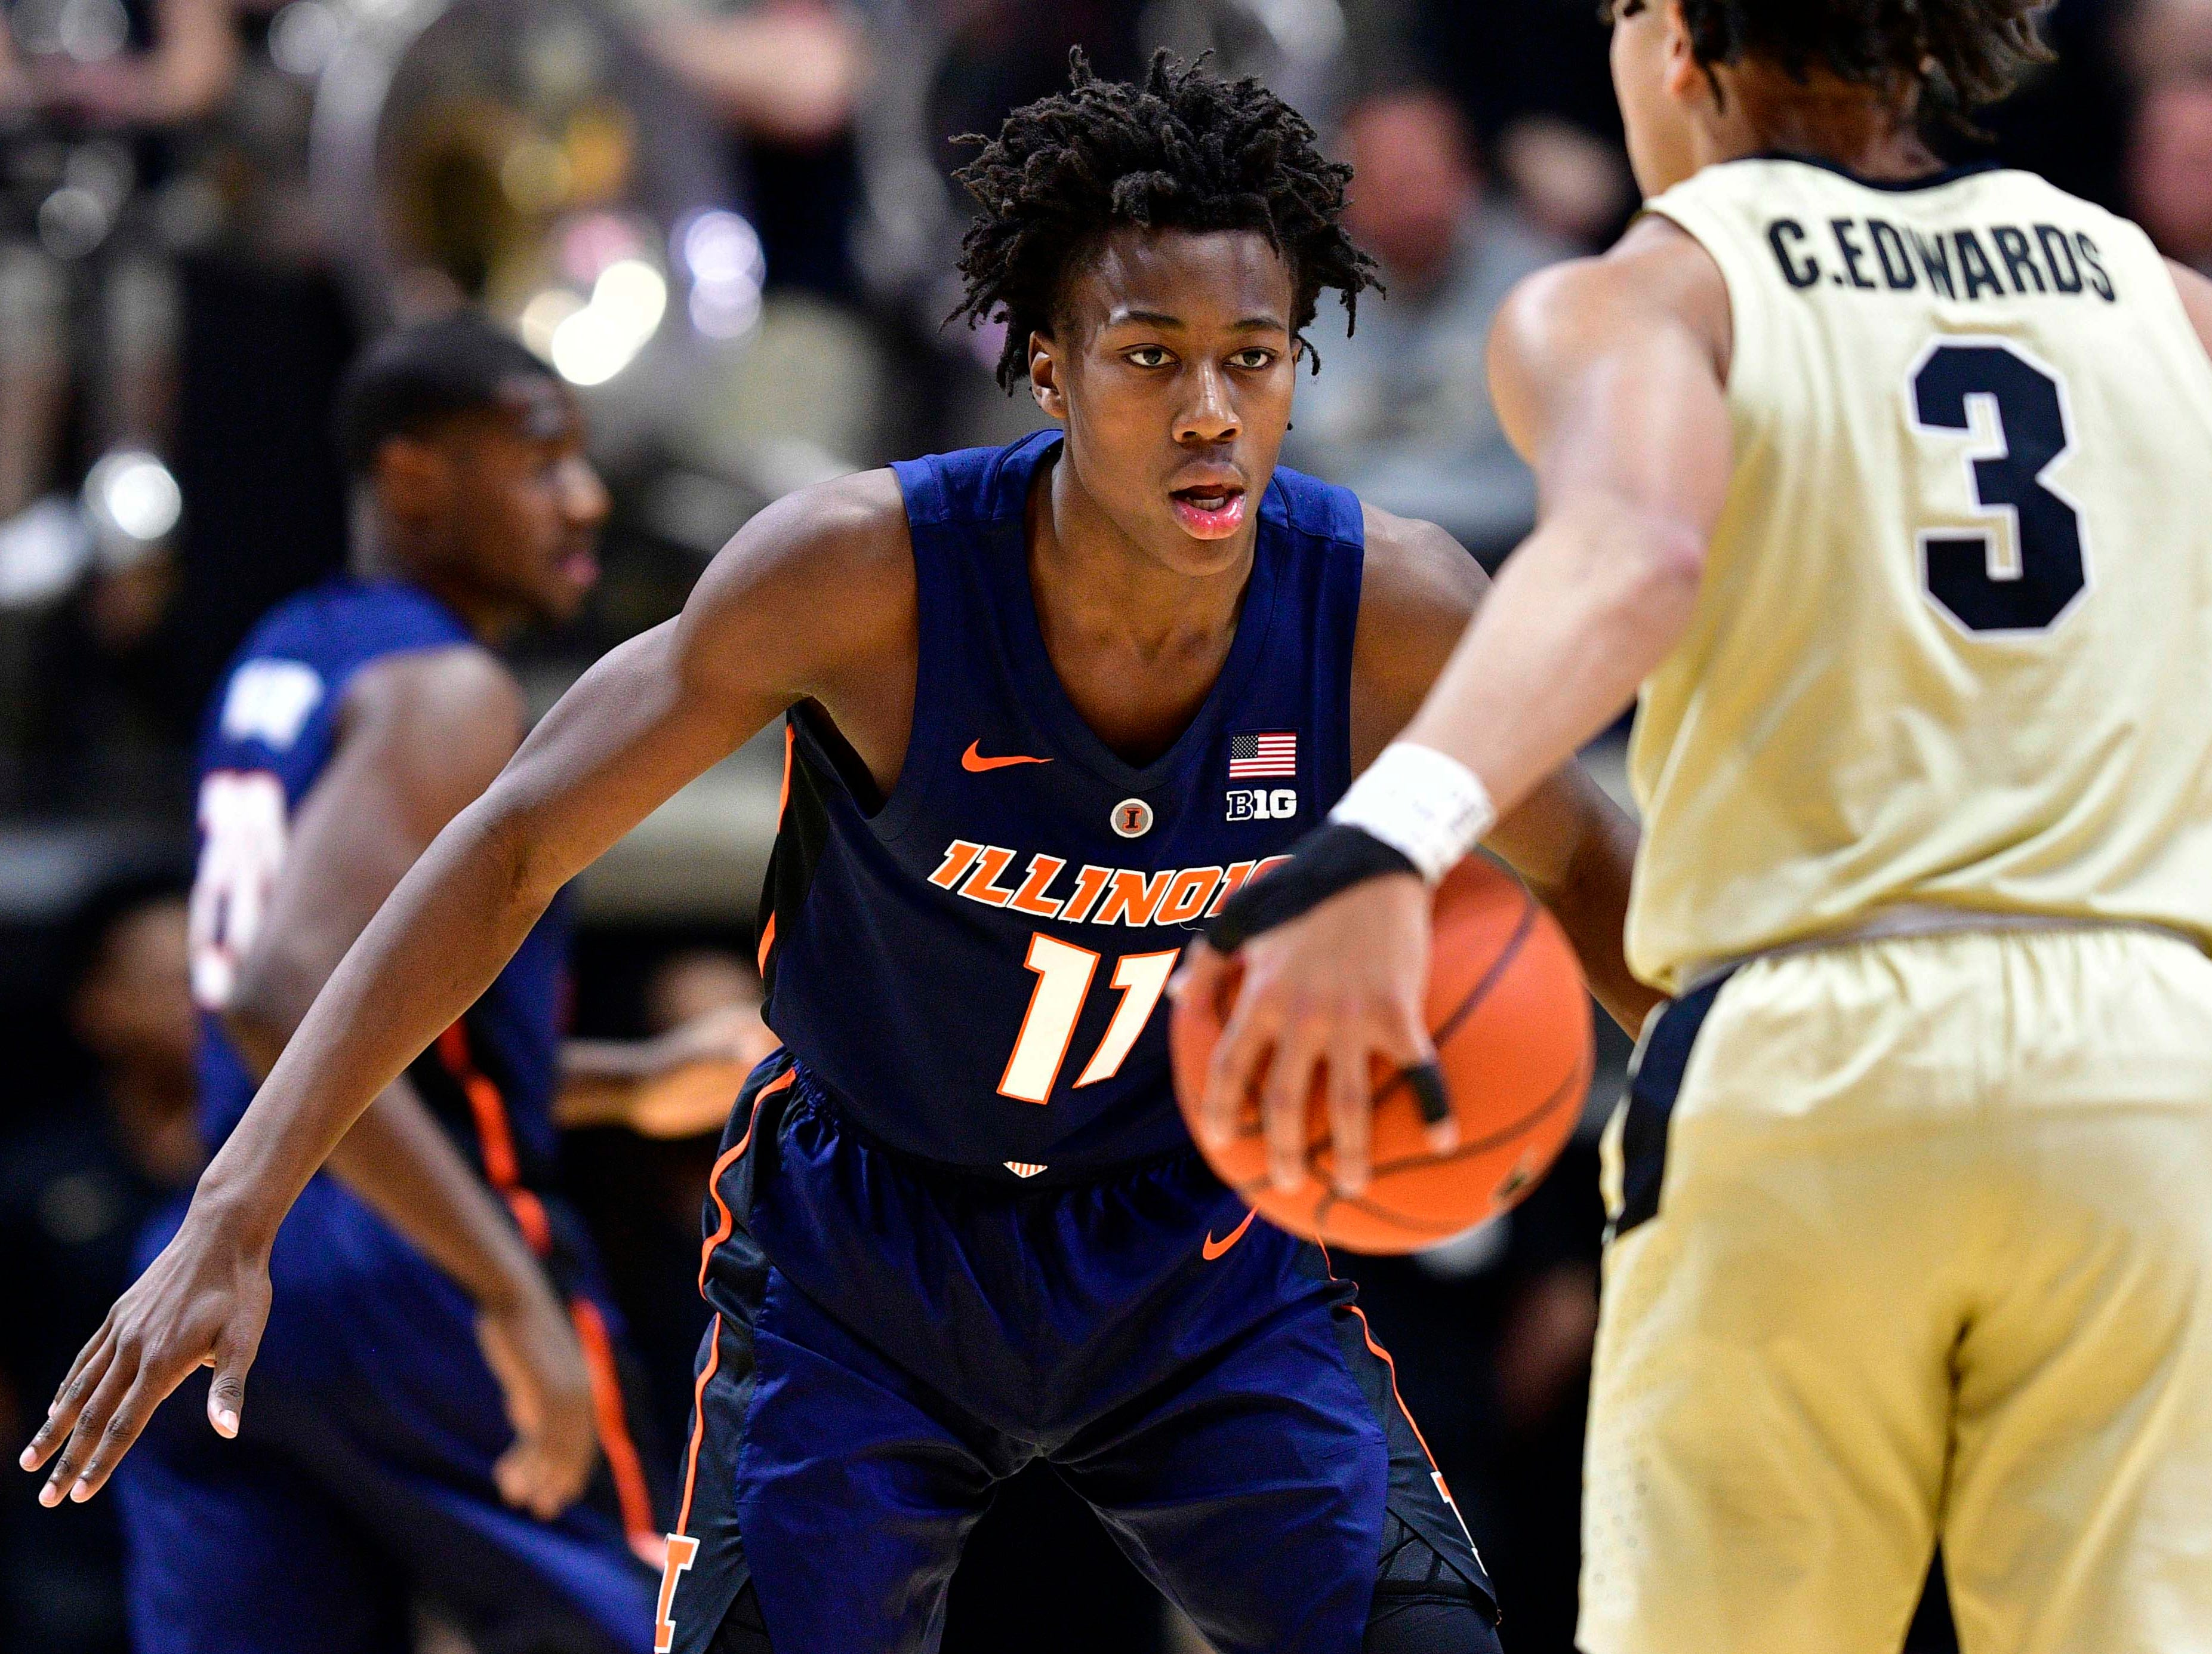 Feb 27, 2019; West Lafayette, IN, USA; Illinois Fighting Illini guard Ayo Dosunmu (11) looks to guard Purdue Boilermakers guard Carsen Edwards (3) during the first half of the game at Mackey Arena. Mandatory Credit: Marc Lebryk-USA TODAY Sports